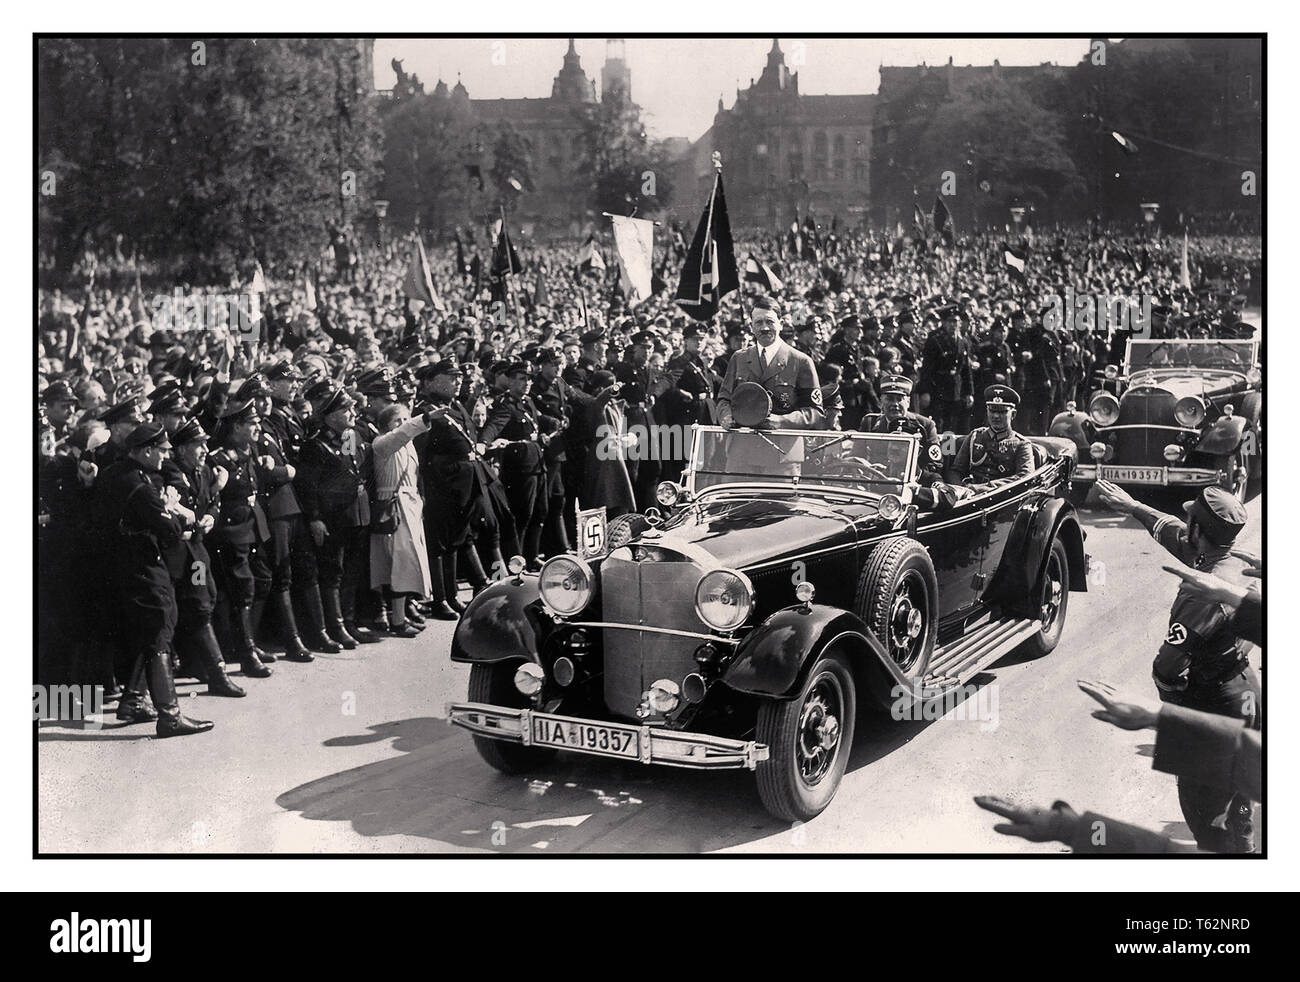 Adolf Hitler in Mercedes open car acknowledges the Nuremberg ecstatic crowds giving the Nazi Heil Hitler salute in his 1939 Mercedes-Benz 770K Gross Open Tourer motorcar which he used during Nazi parades - Stock Image